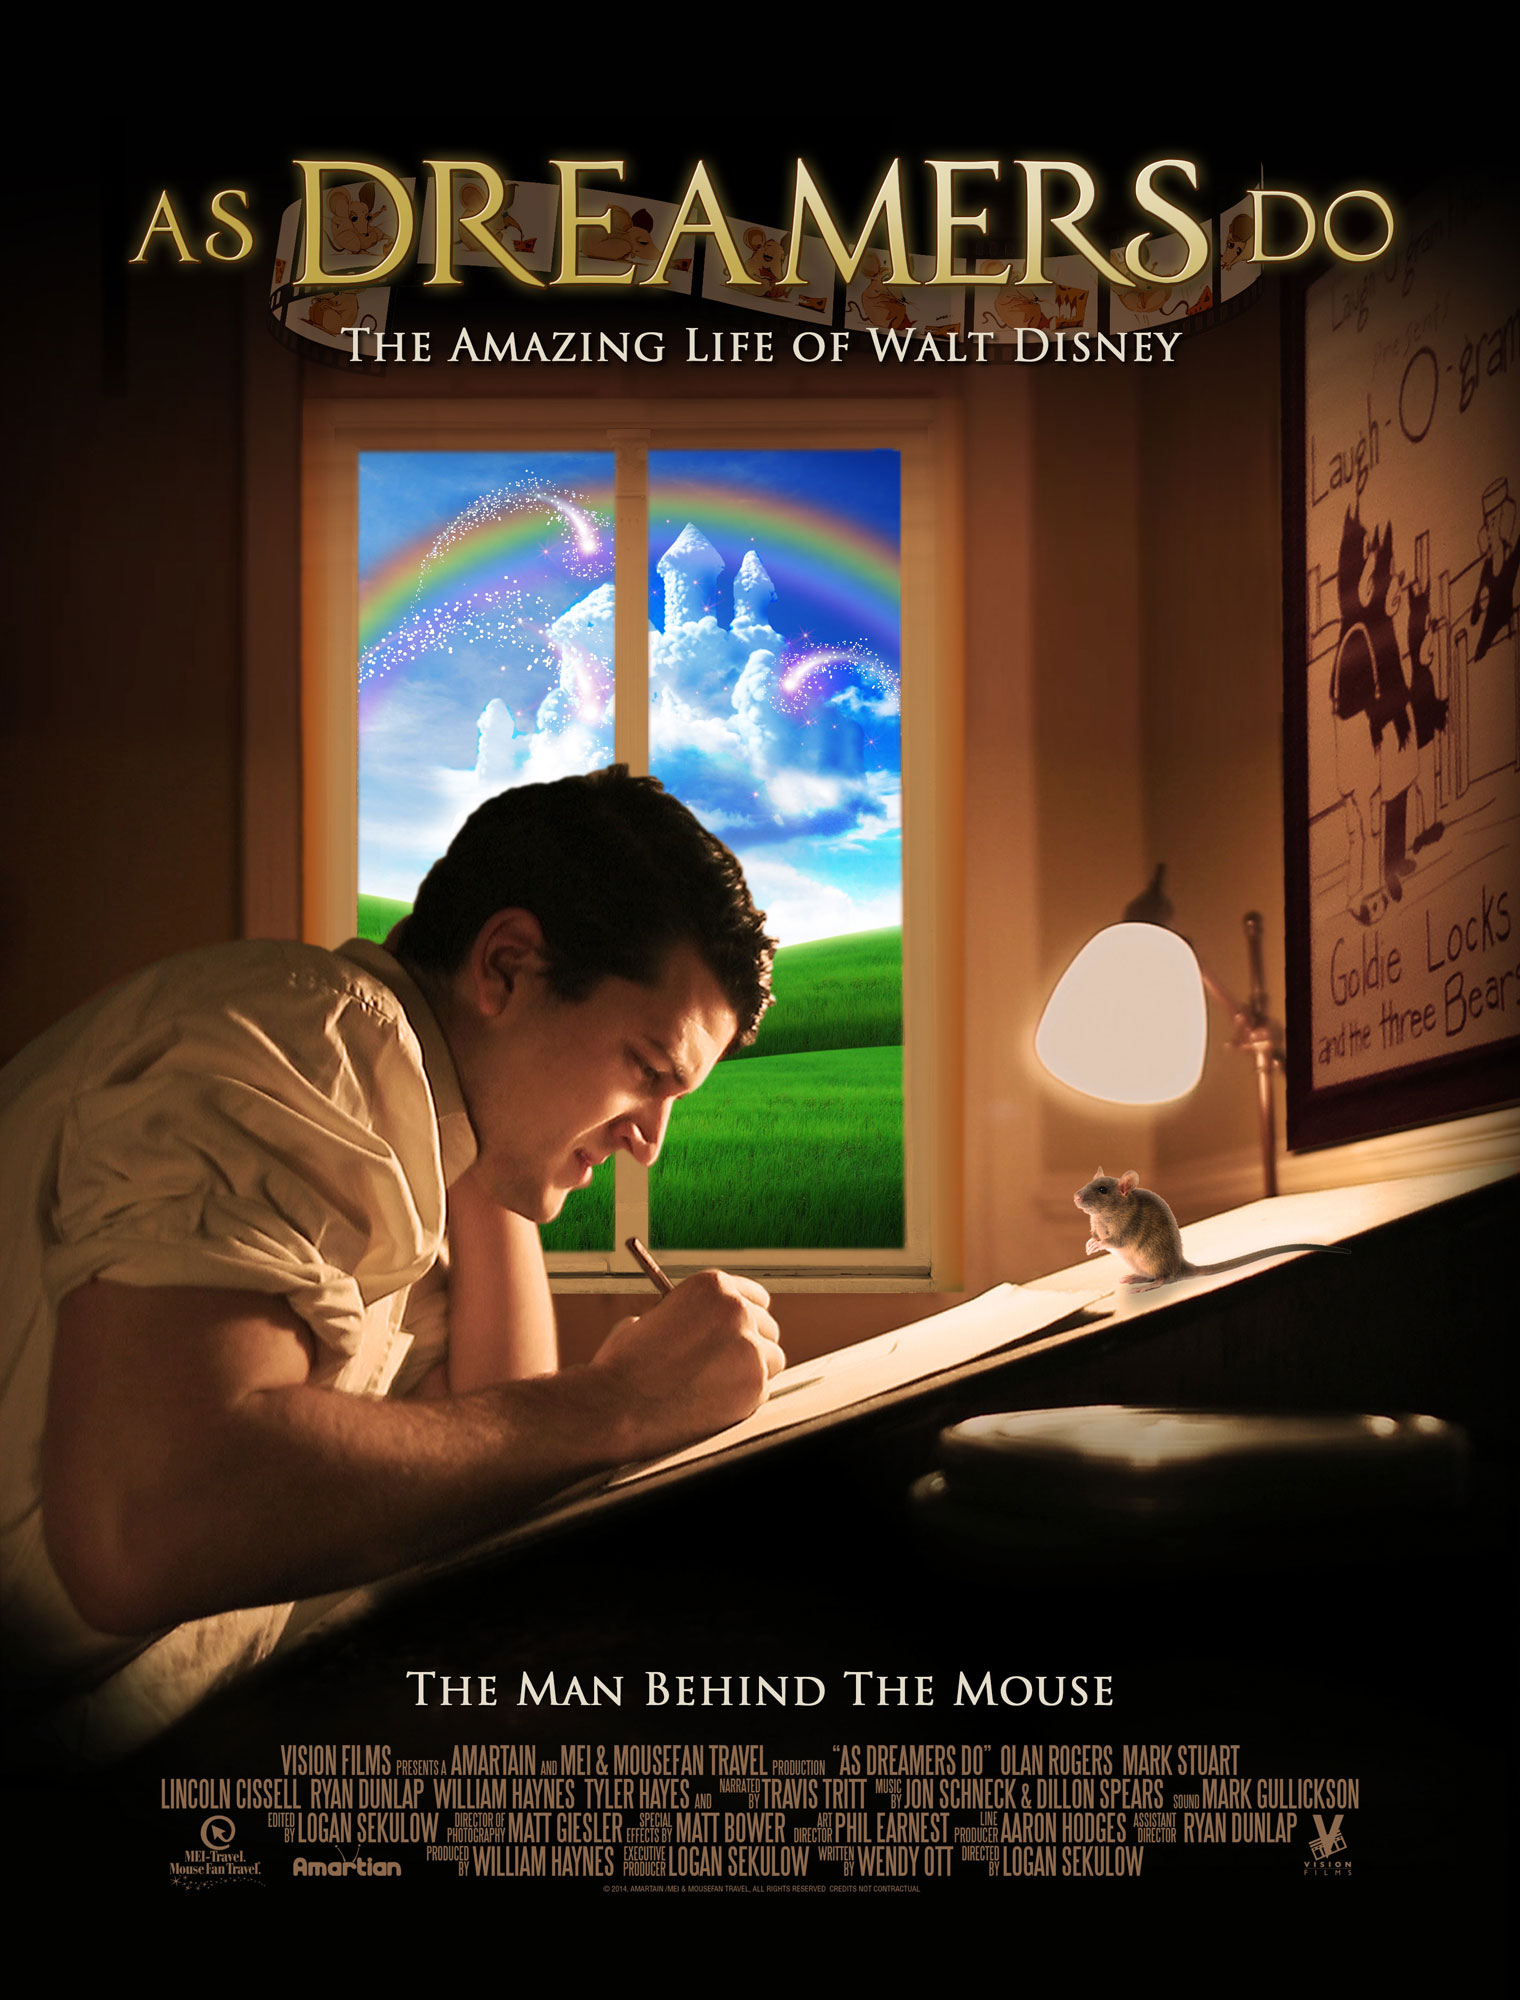 as dreamers do affiche poster amazing life walt disney